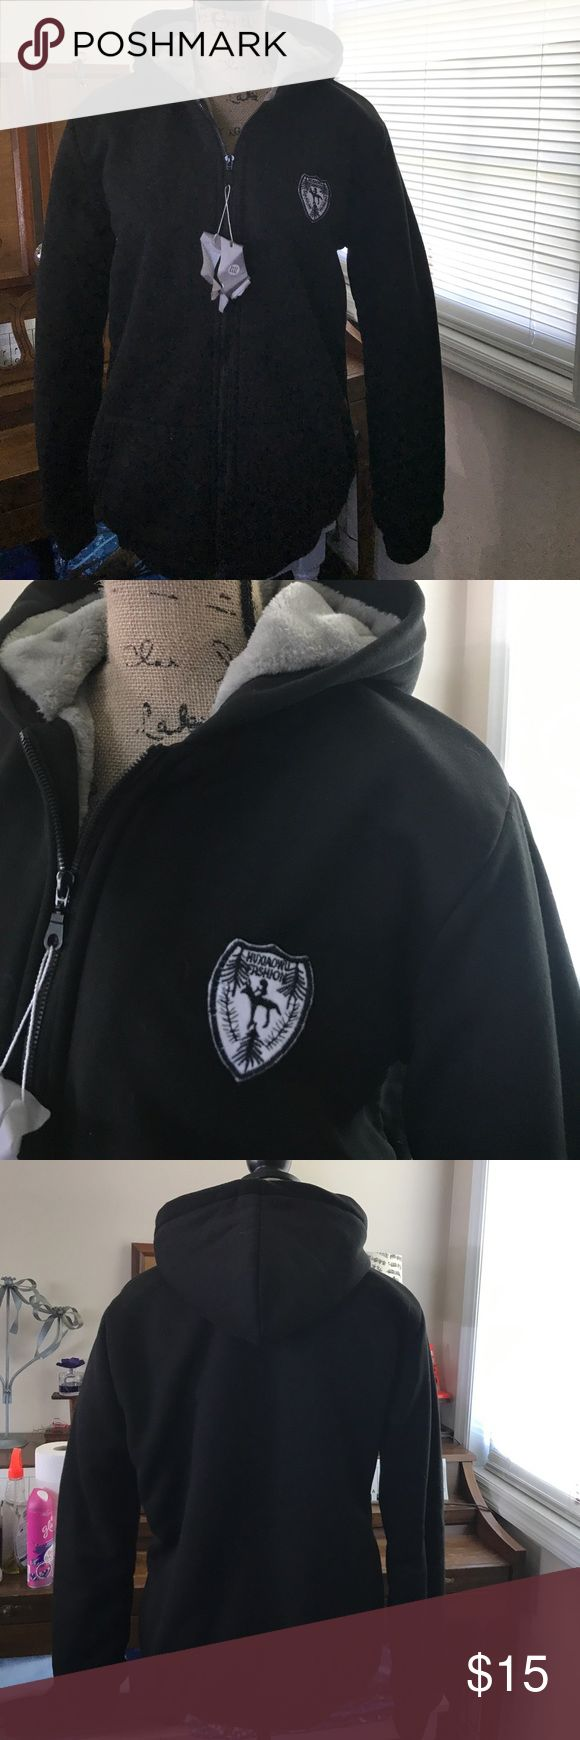 Fur Lined Hoodie Black hoodie with silver fur like lining. Never worn before. Received as a Christmas present and didn't ever wear. I cannot find a size tag but fits like a large medium or small large. Nice and warm. Zips all the way down in the front. Excellent condition. Jackets & Coats